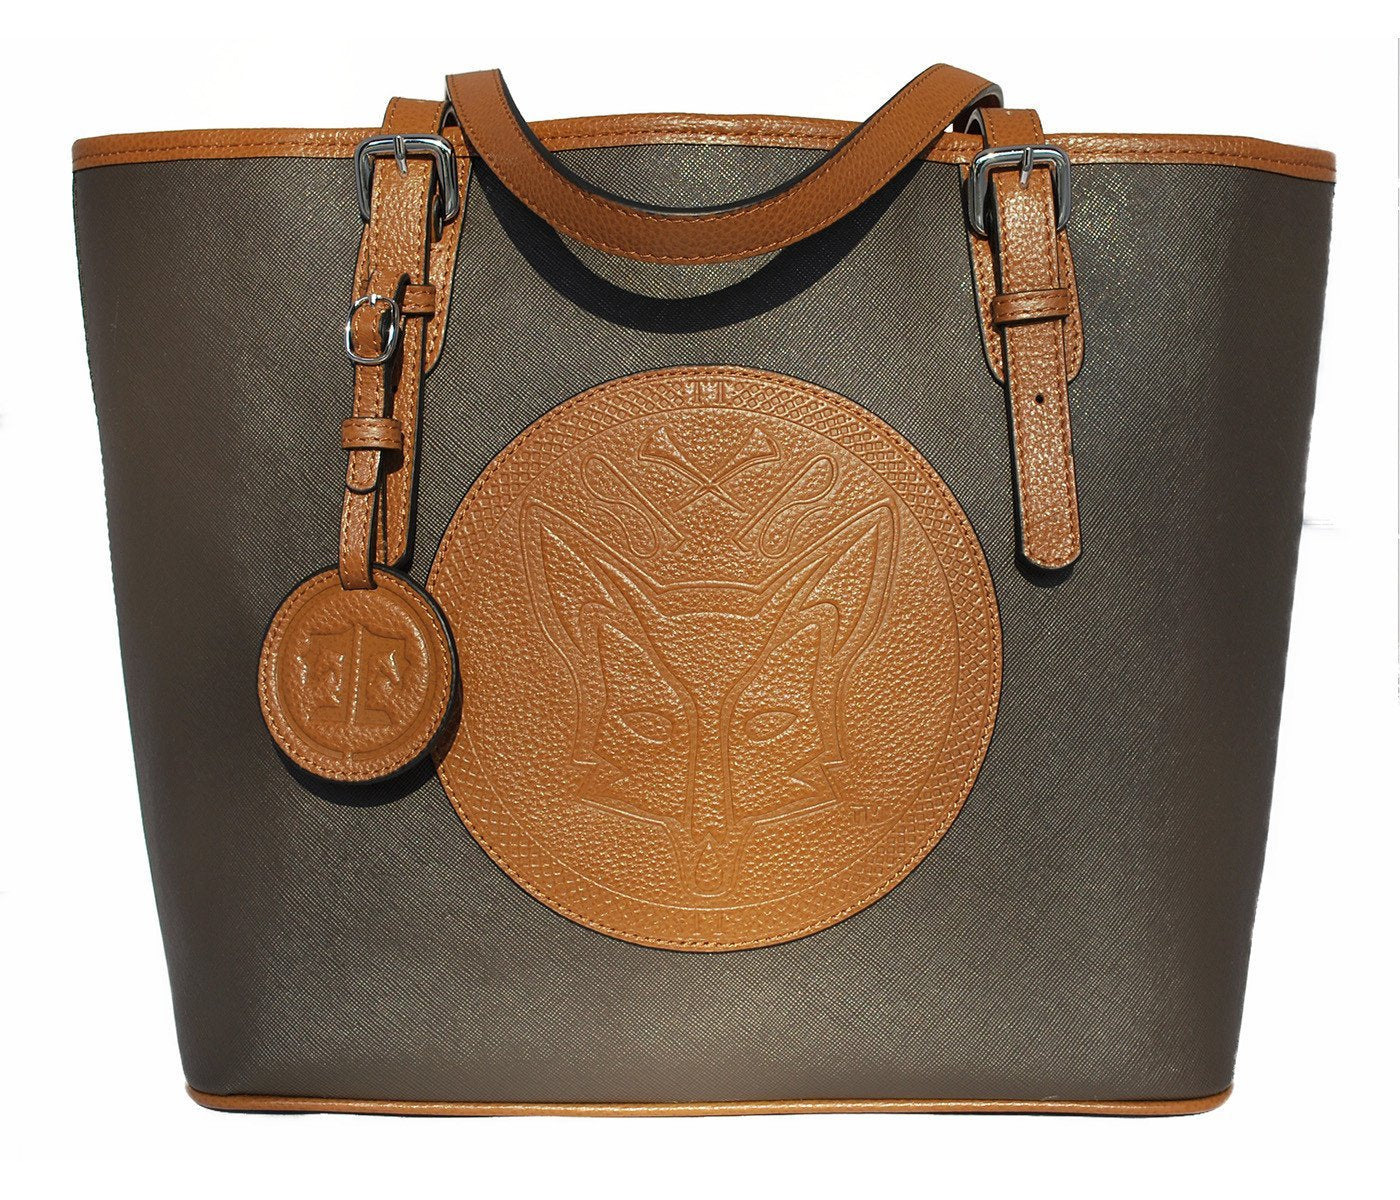 Tucker Tweed Leather Handbags Espresso/Chestnut The James River Carry All: Foxhunting